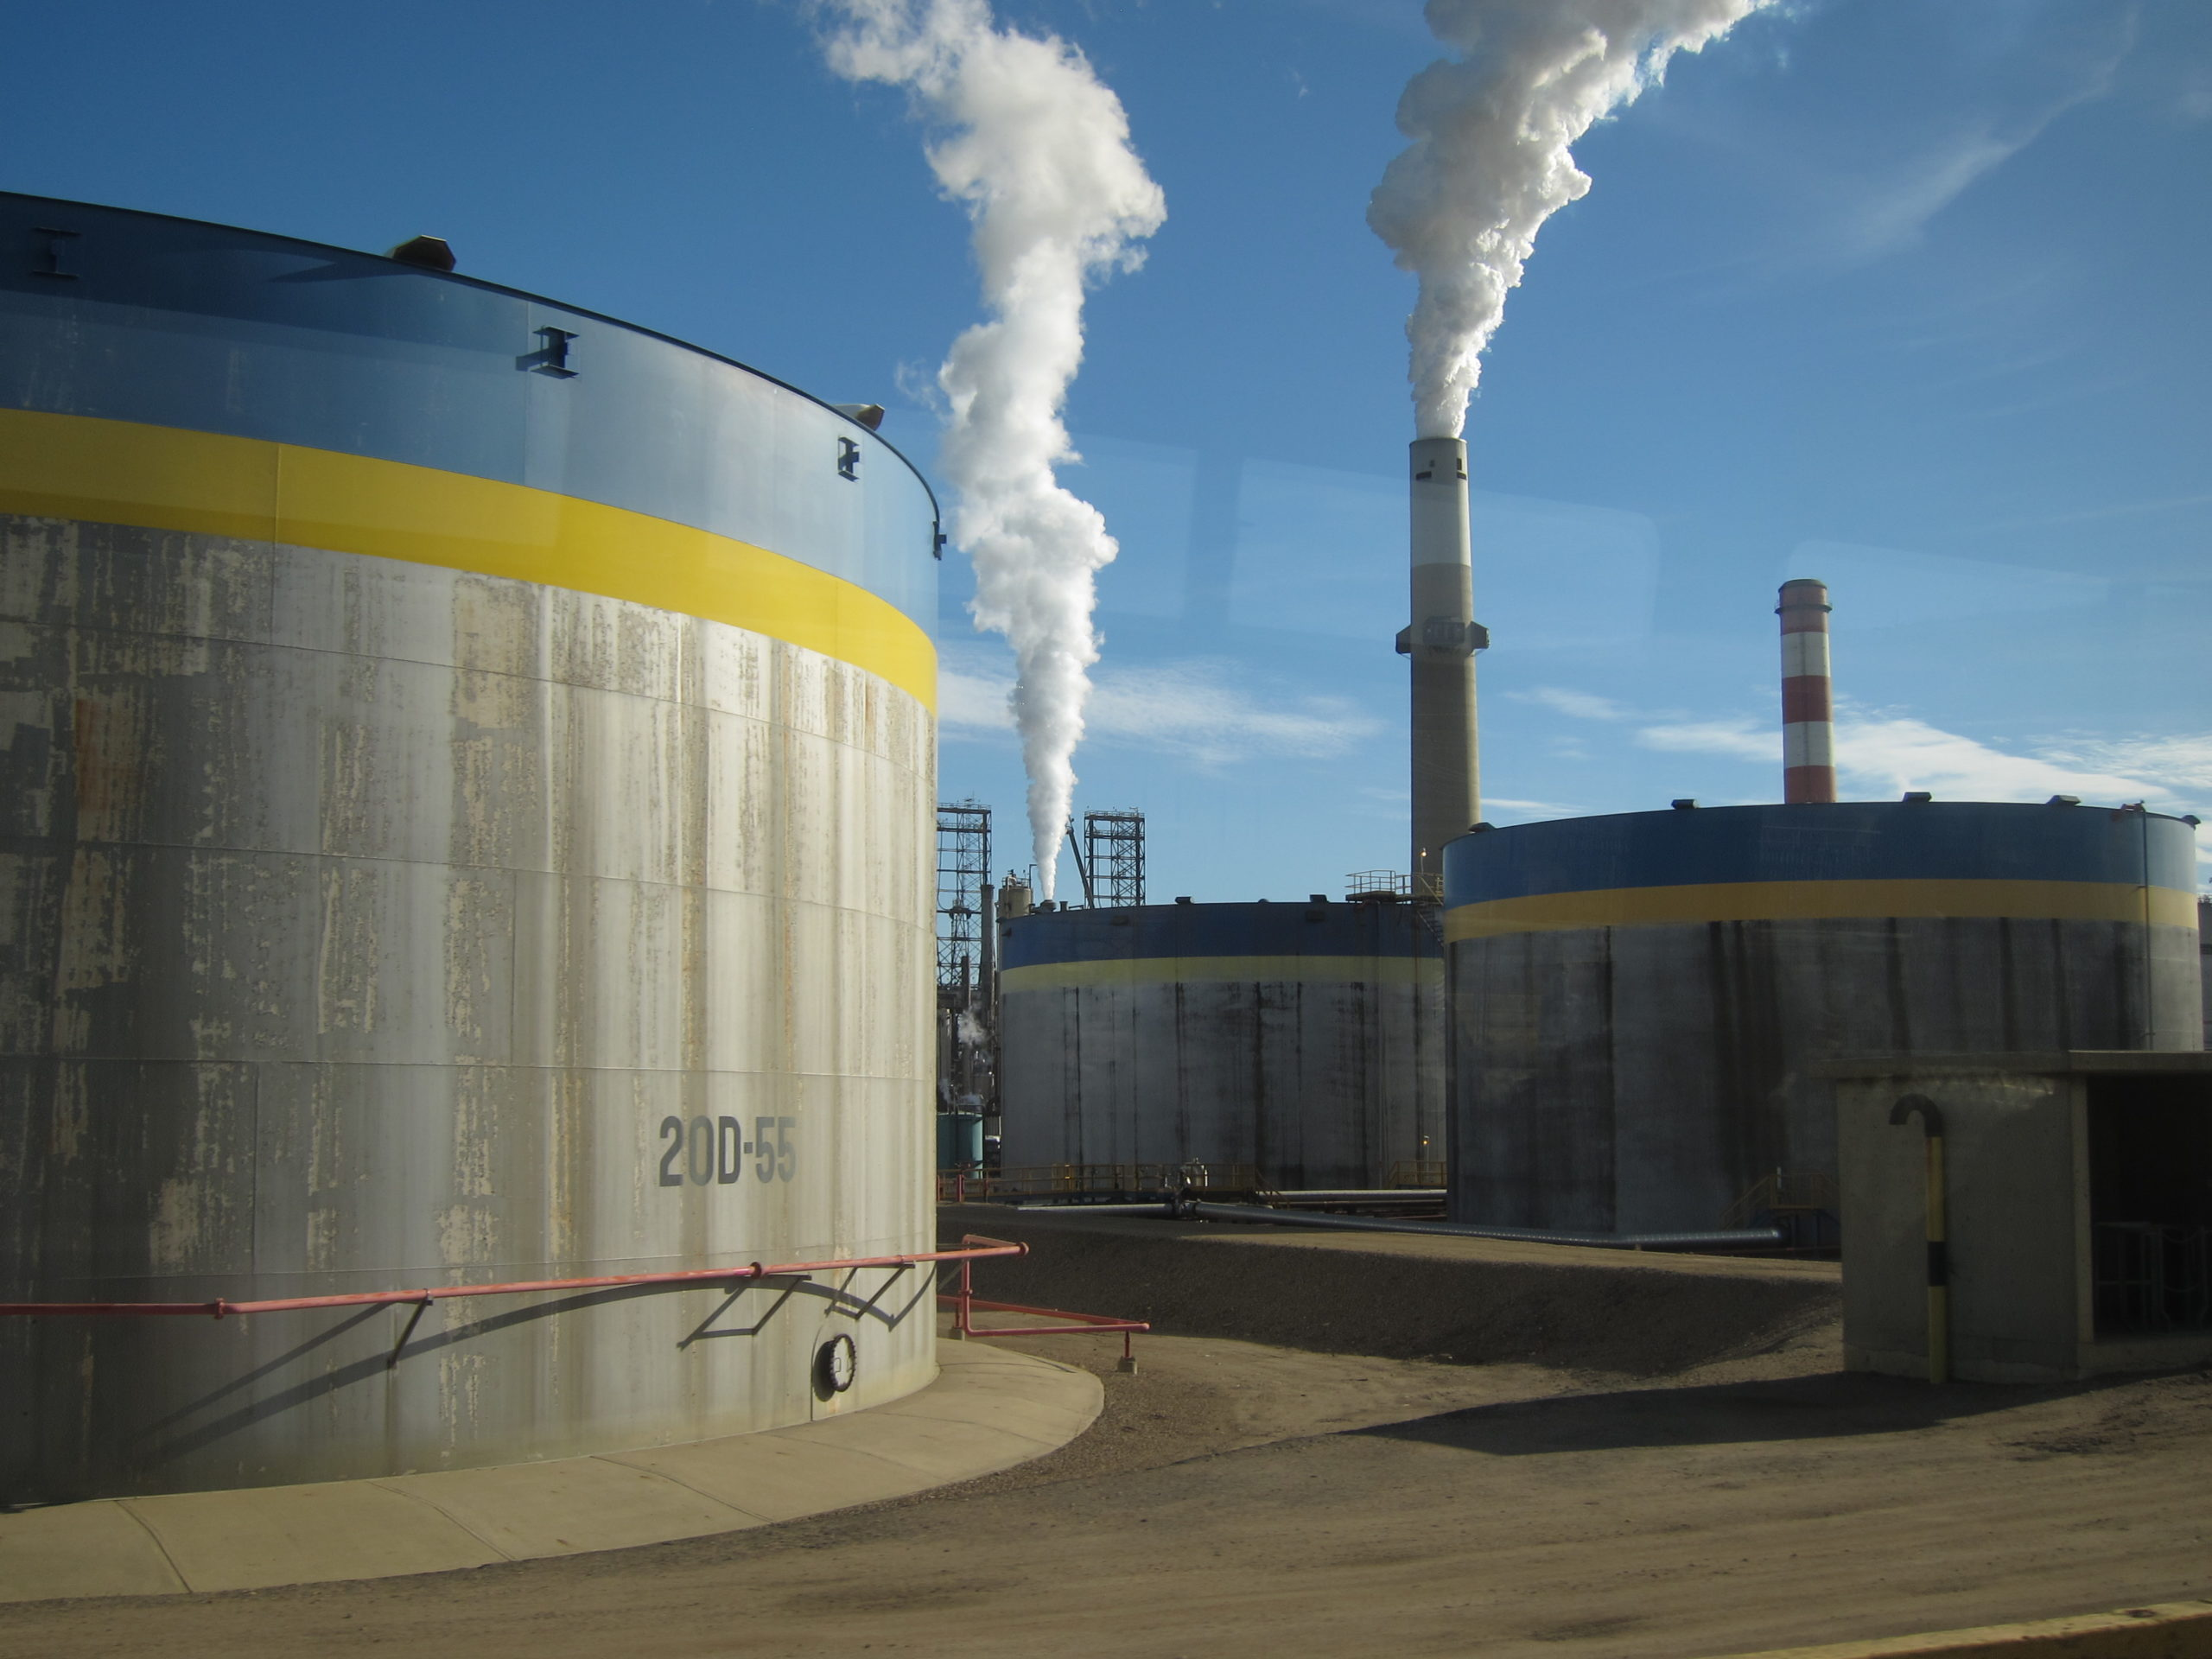 Oilsands Performance Credited For Improvement In Suncor's GHG Emission Intensity